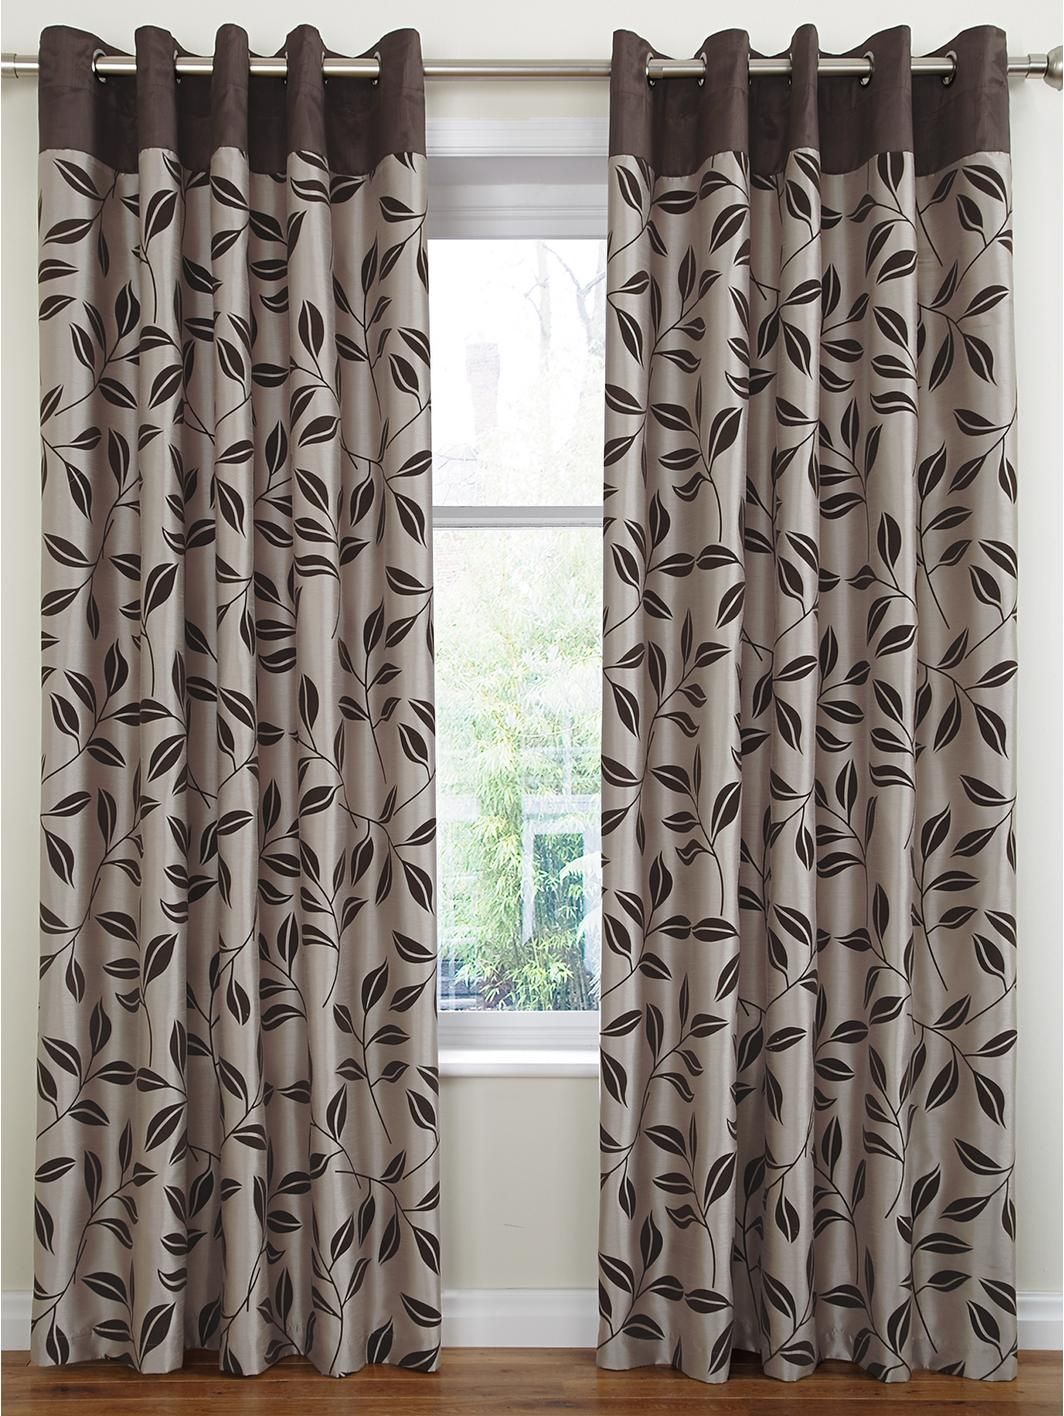 Kitchen Curtains Littlewoods Bay Leaf Flocked Lined Eyelet Curtains Http Littlewoods